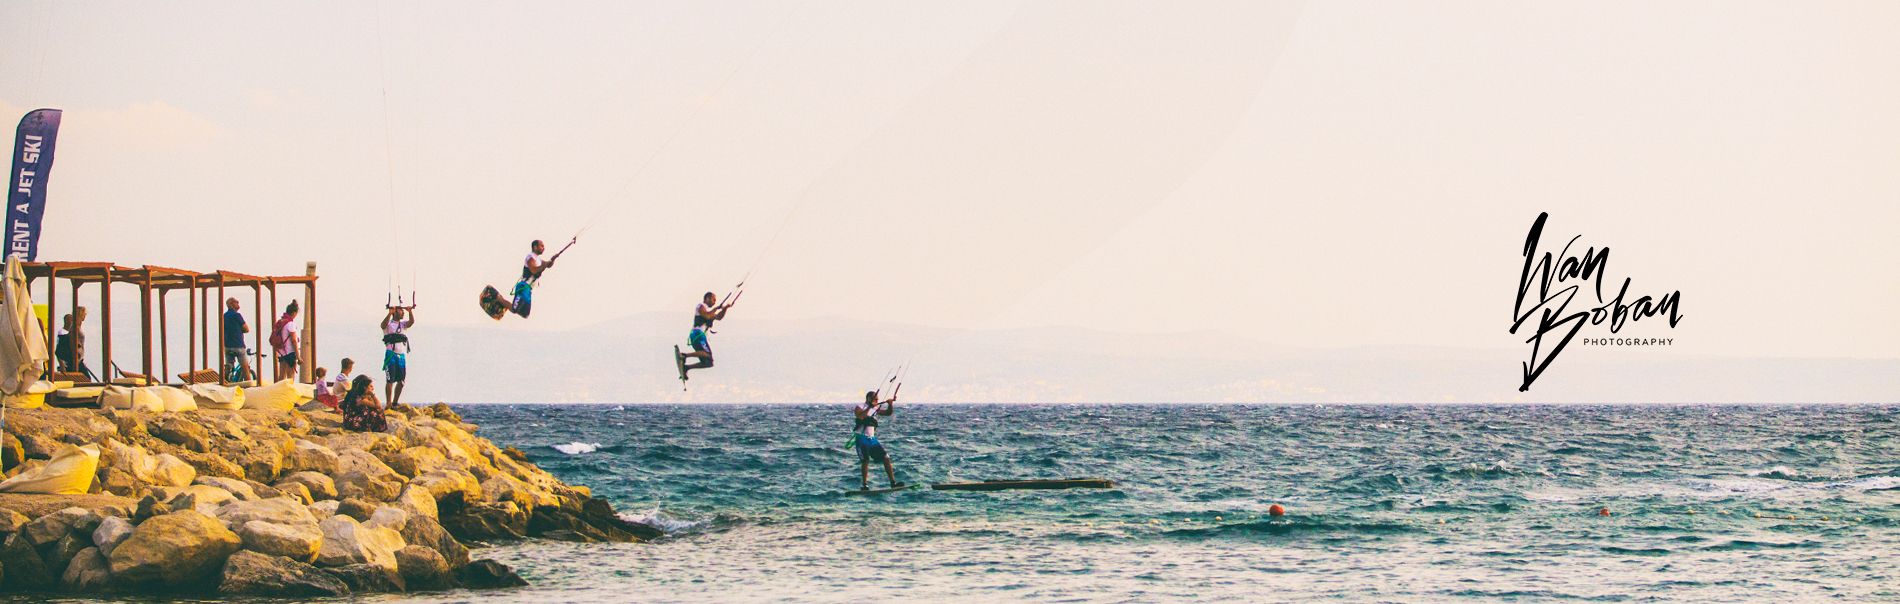 Ivan Boban Homepage Wide Hero Windsurfrer Action Sequence with logo